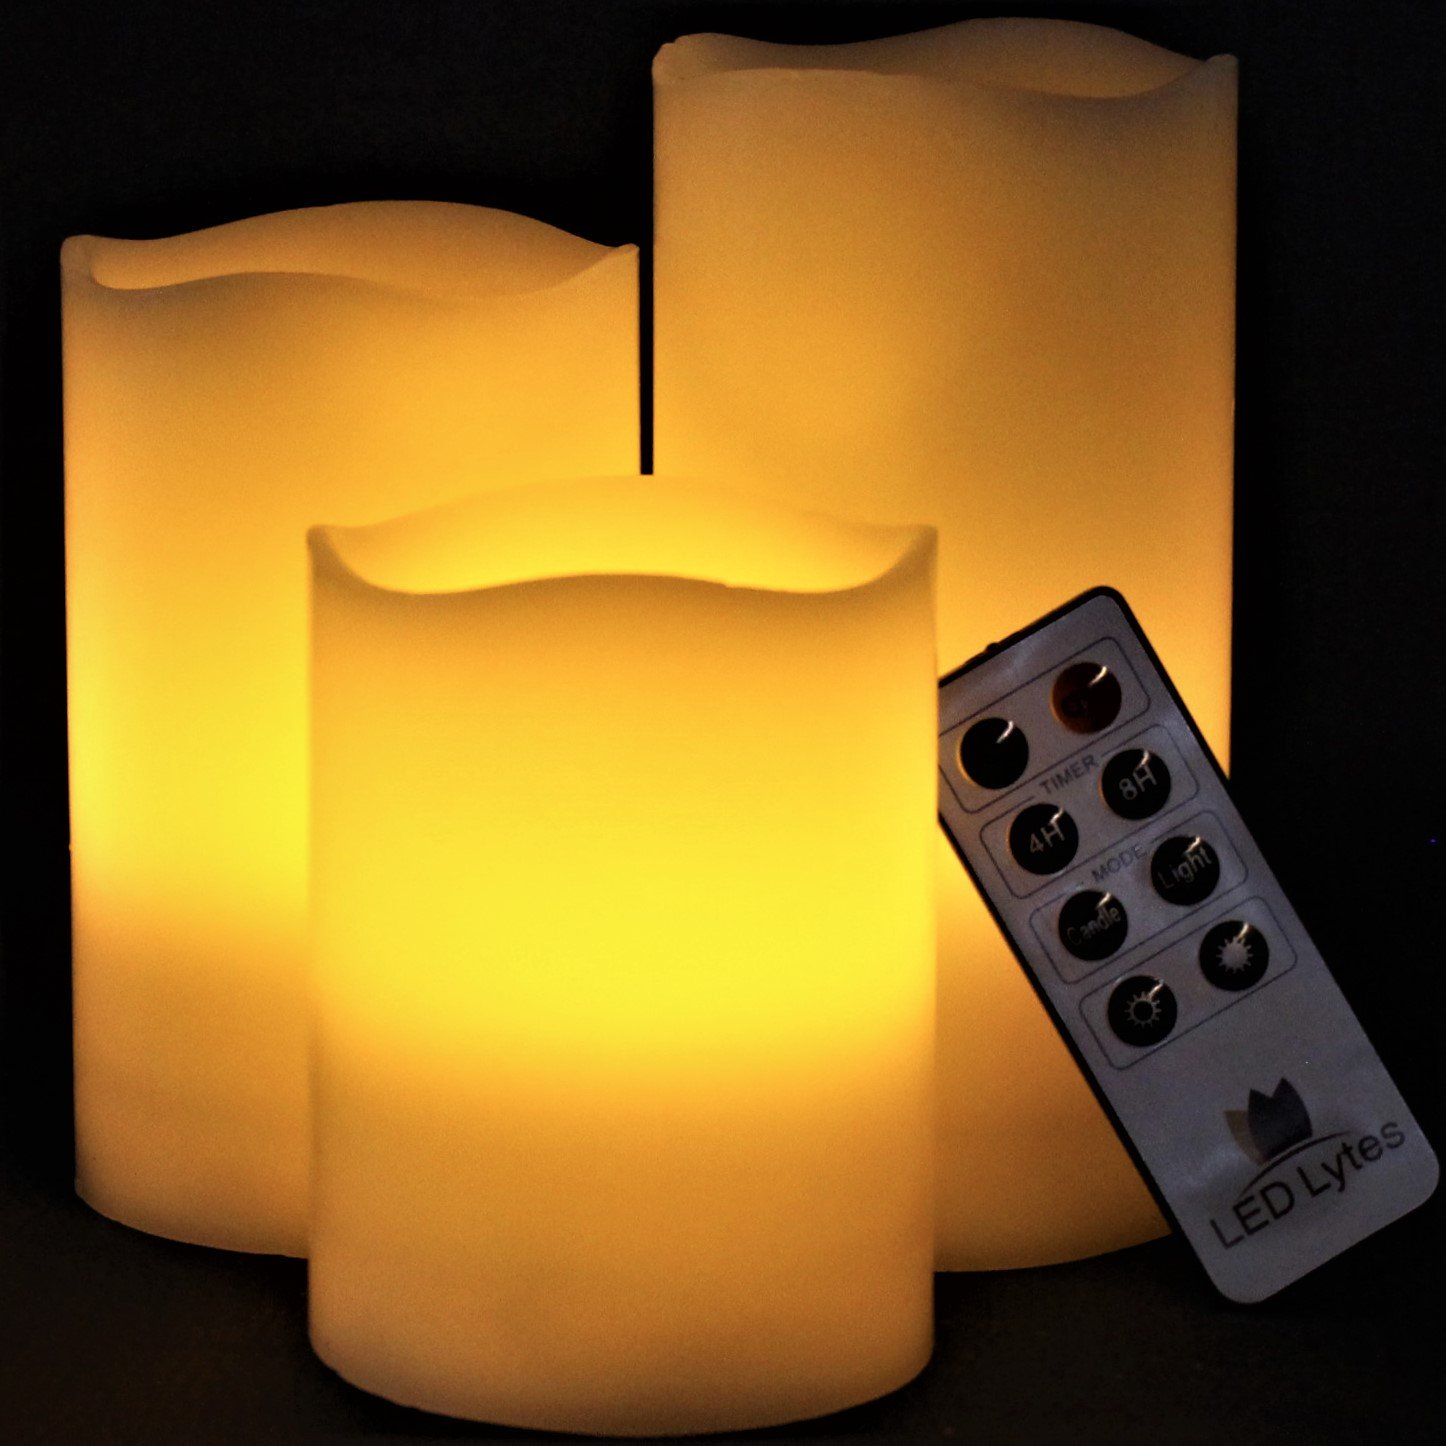 LED Lytes Flickering Flameless Candles - Set of 3 Ivory Wax Flickering Amber Yellow Flame, Auto-Off Timer Remote Control Fake Battery Operated Candles by LED Lytes (Image #2)